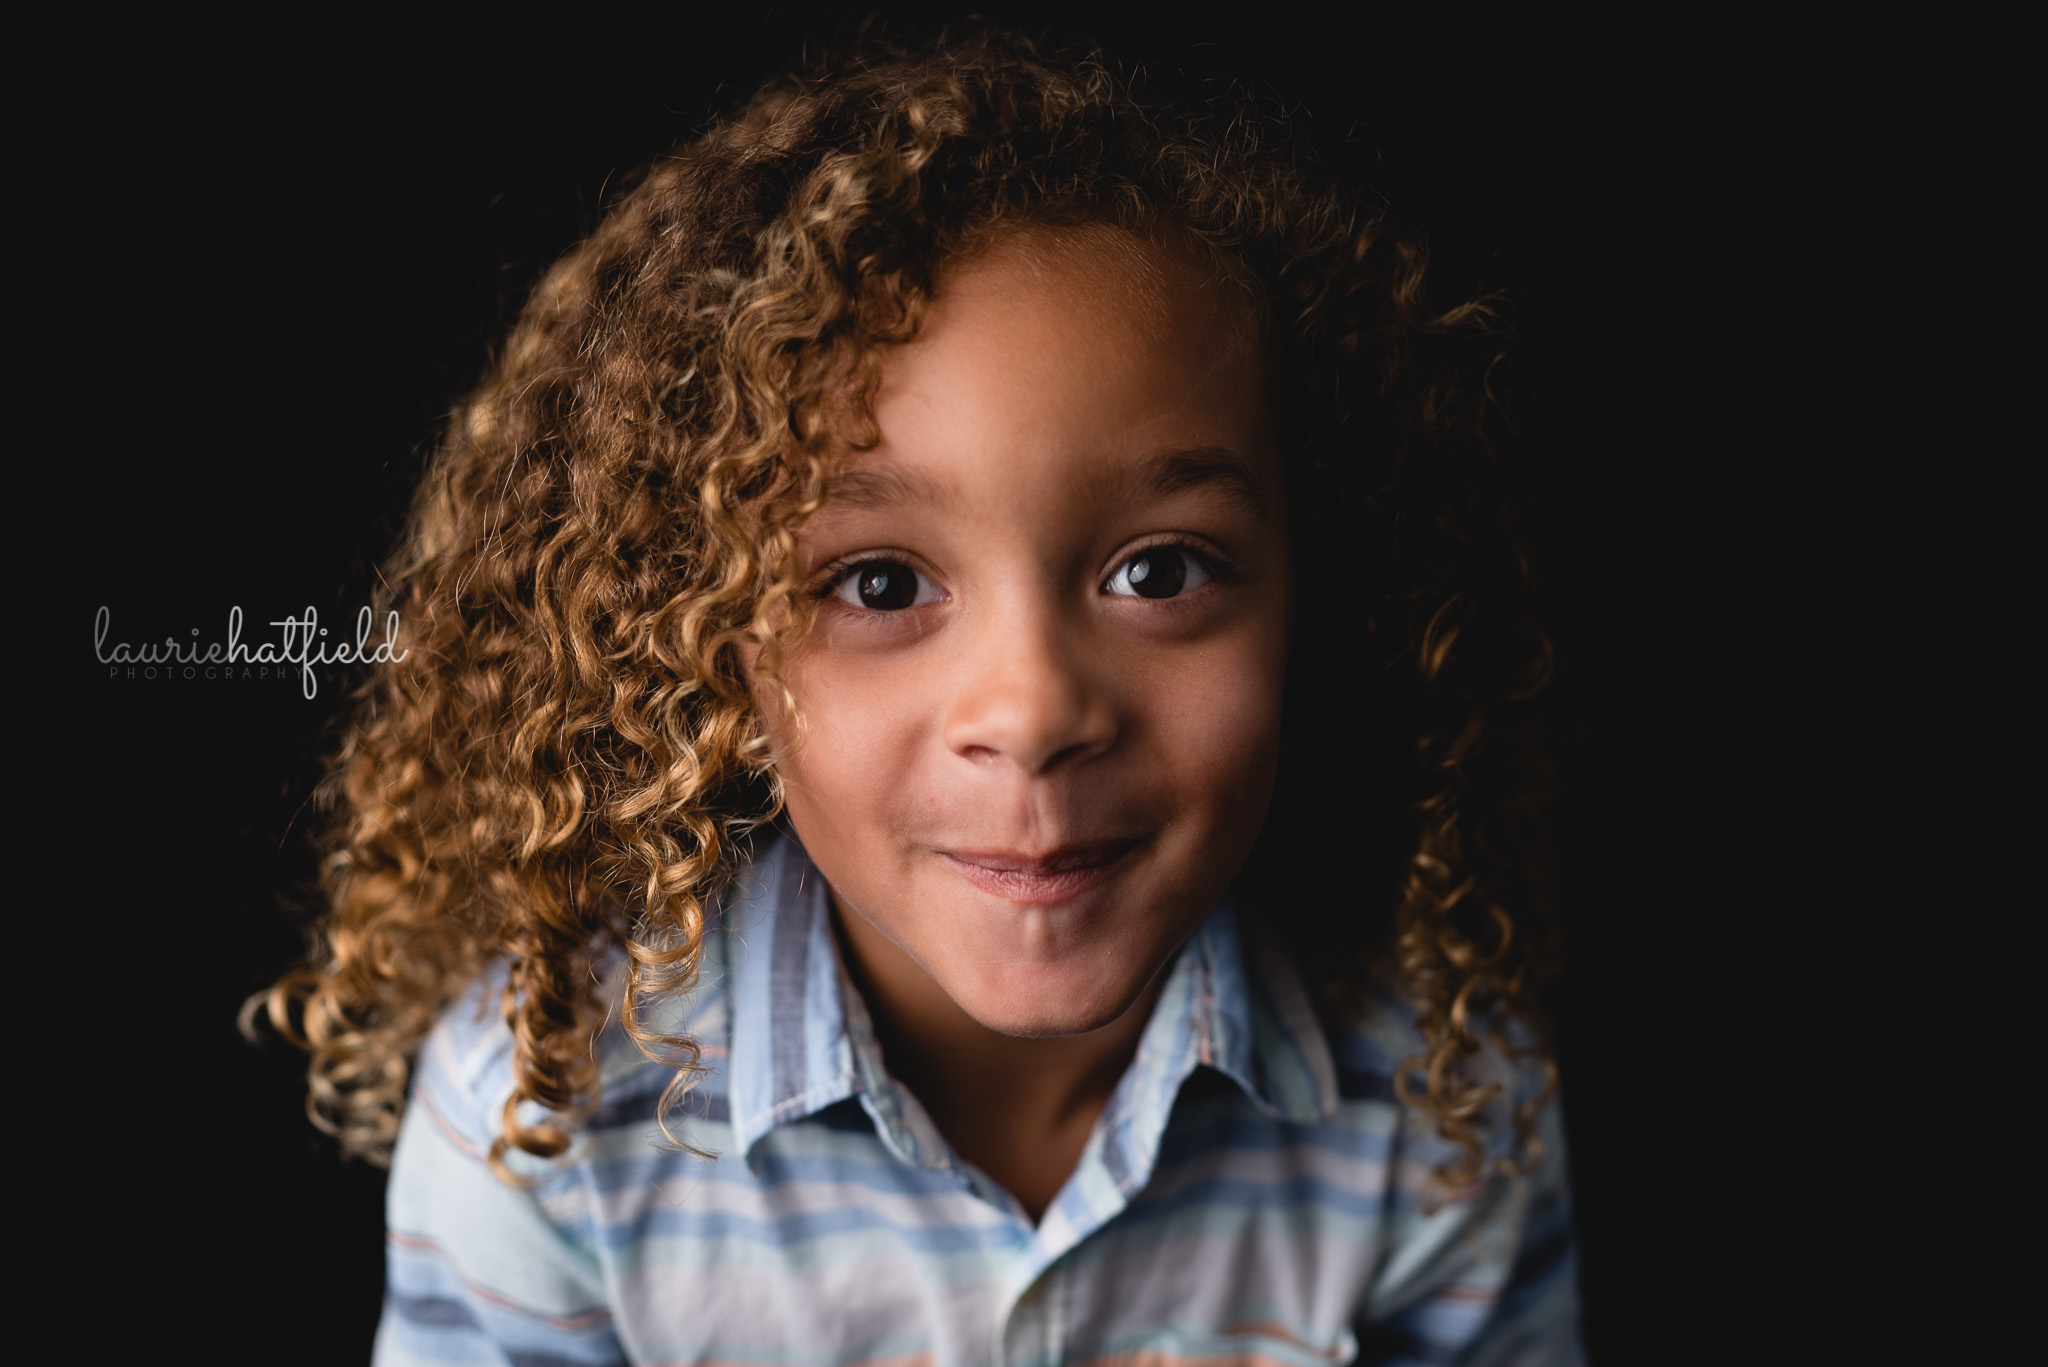 little boy with curly hair | Mobile AL school photos